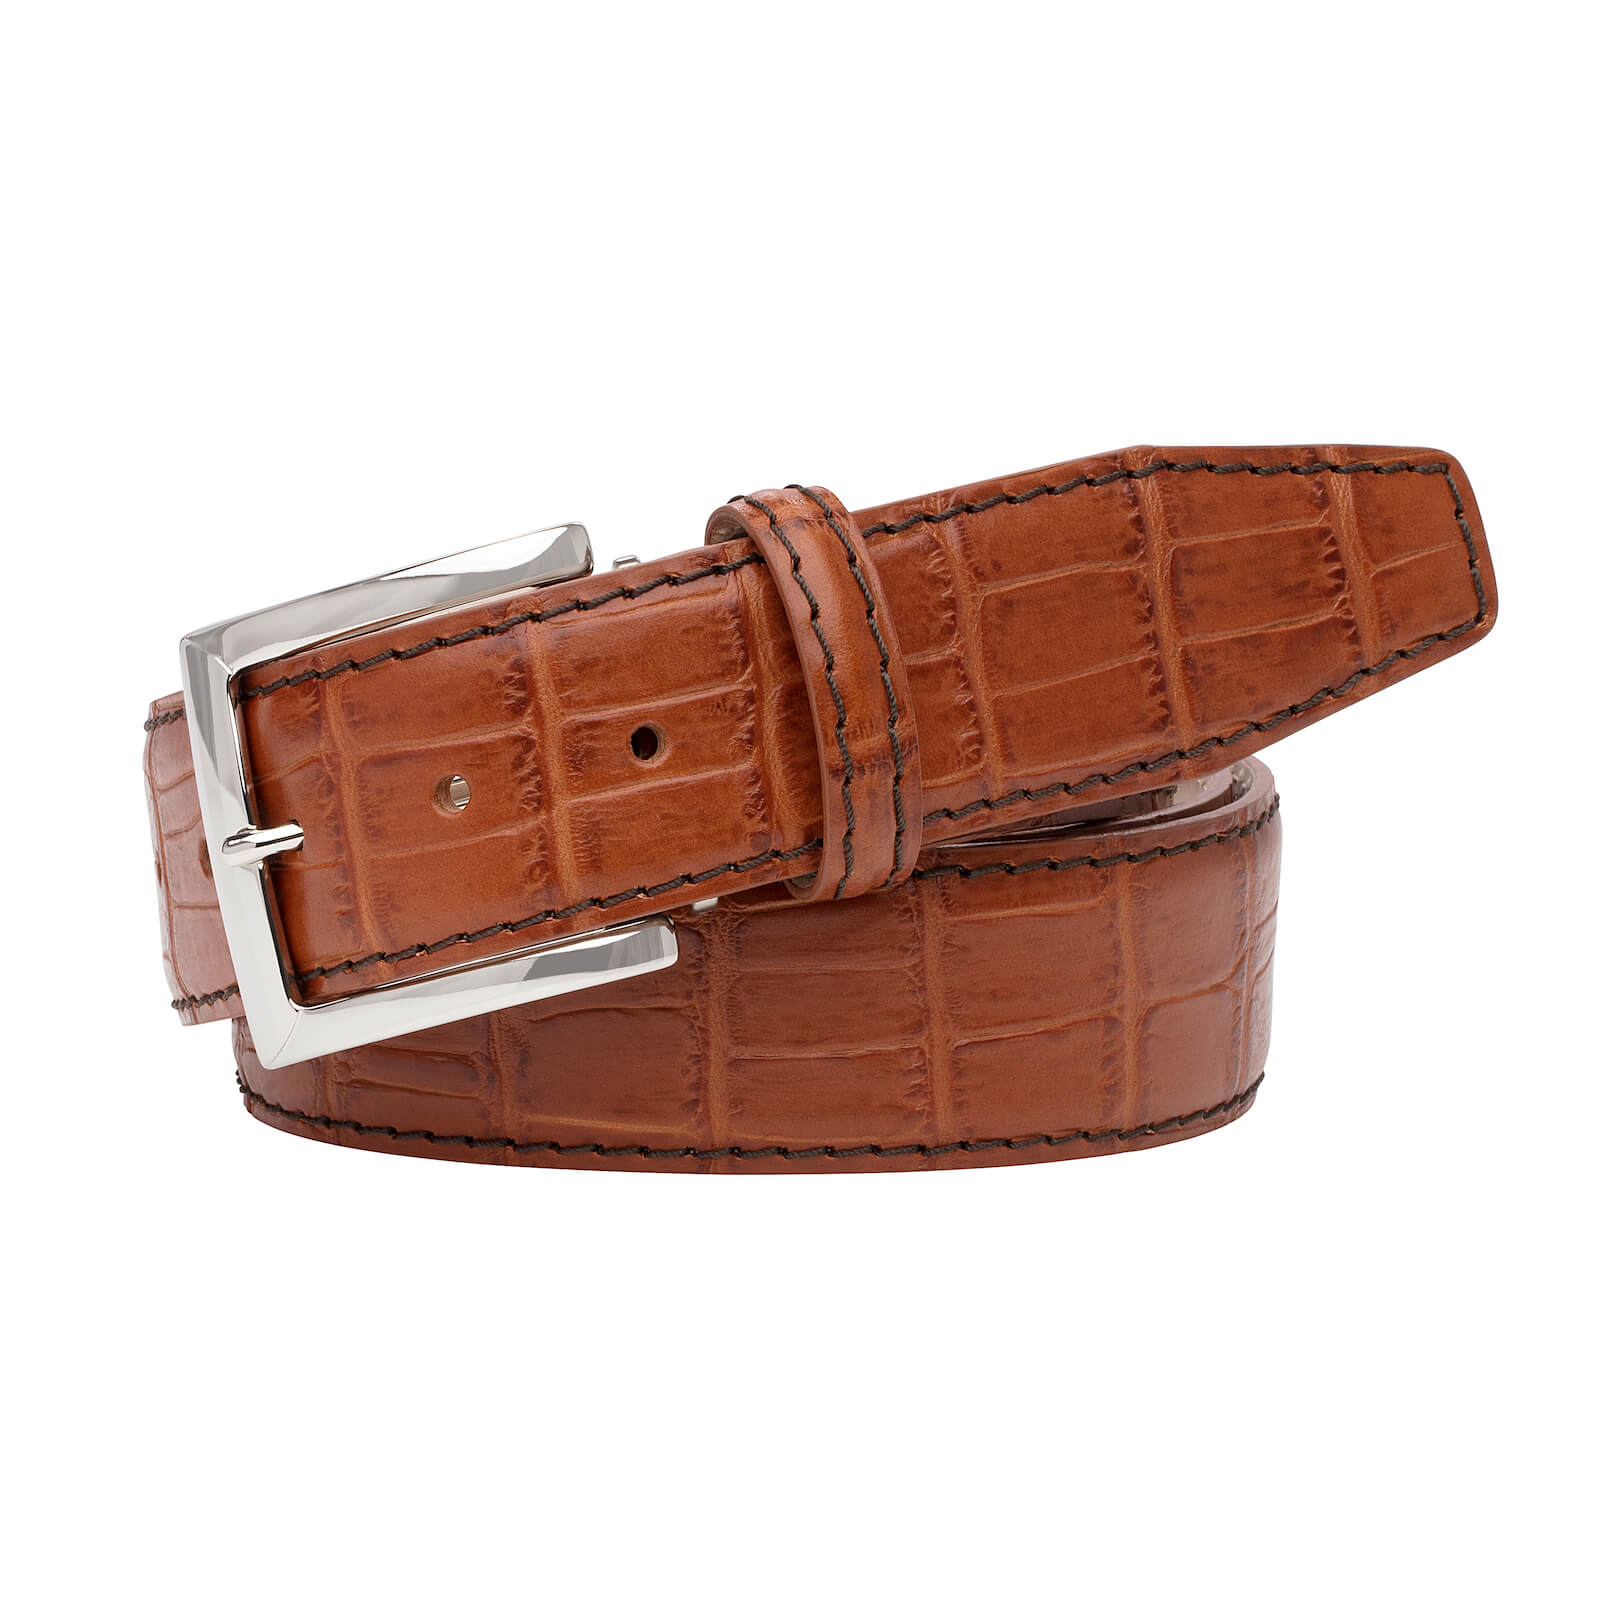 Cognac Mock Gator Leather Belt - Brown / 44 / 40mm | Mens Fashion & Leather Goods by Roger Ximenez